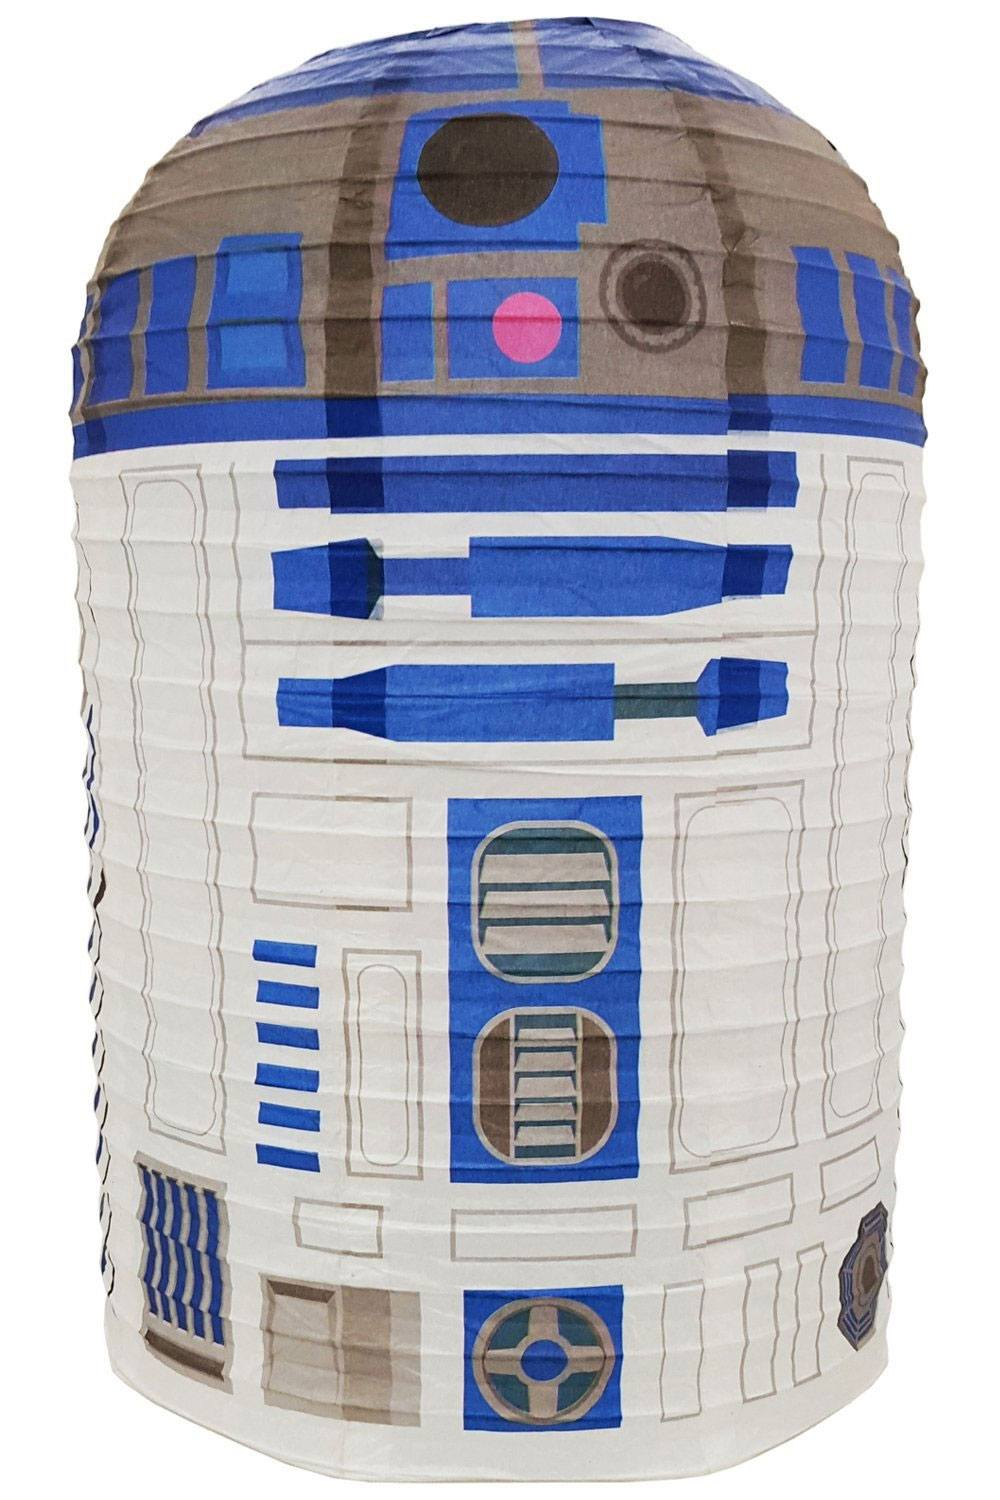 Star Wars Paper Light Shade R2-D2 40 cm